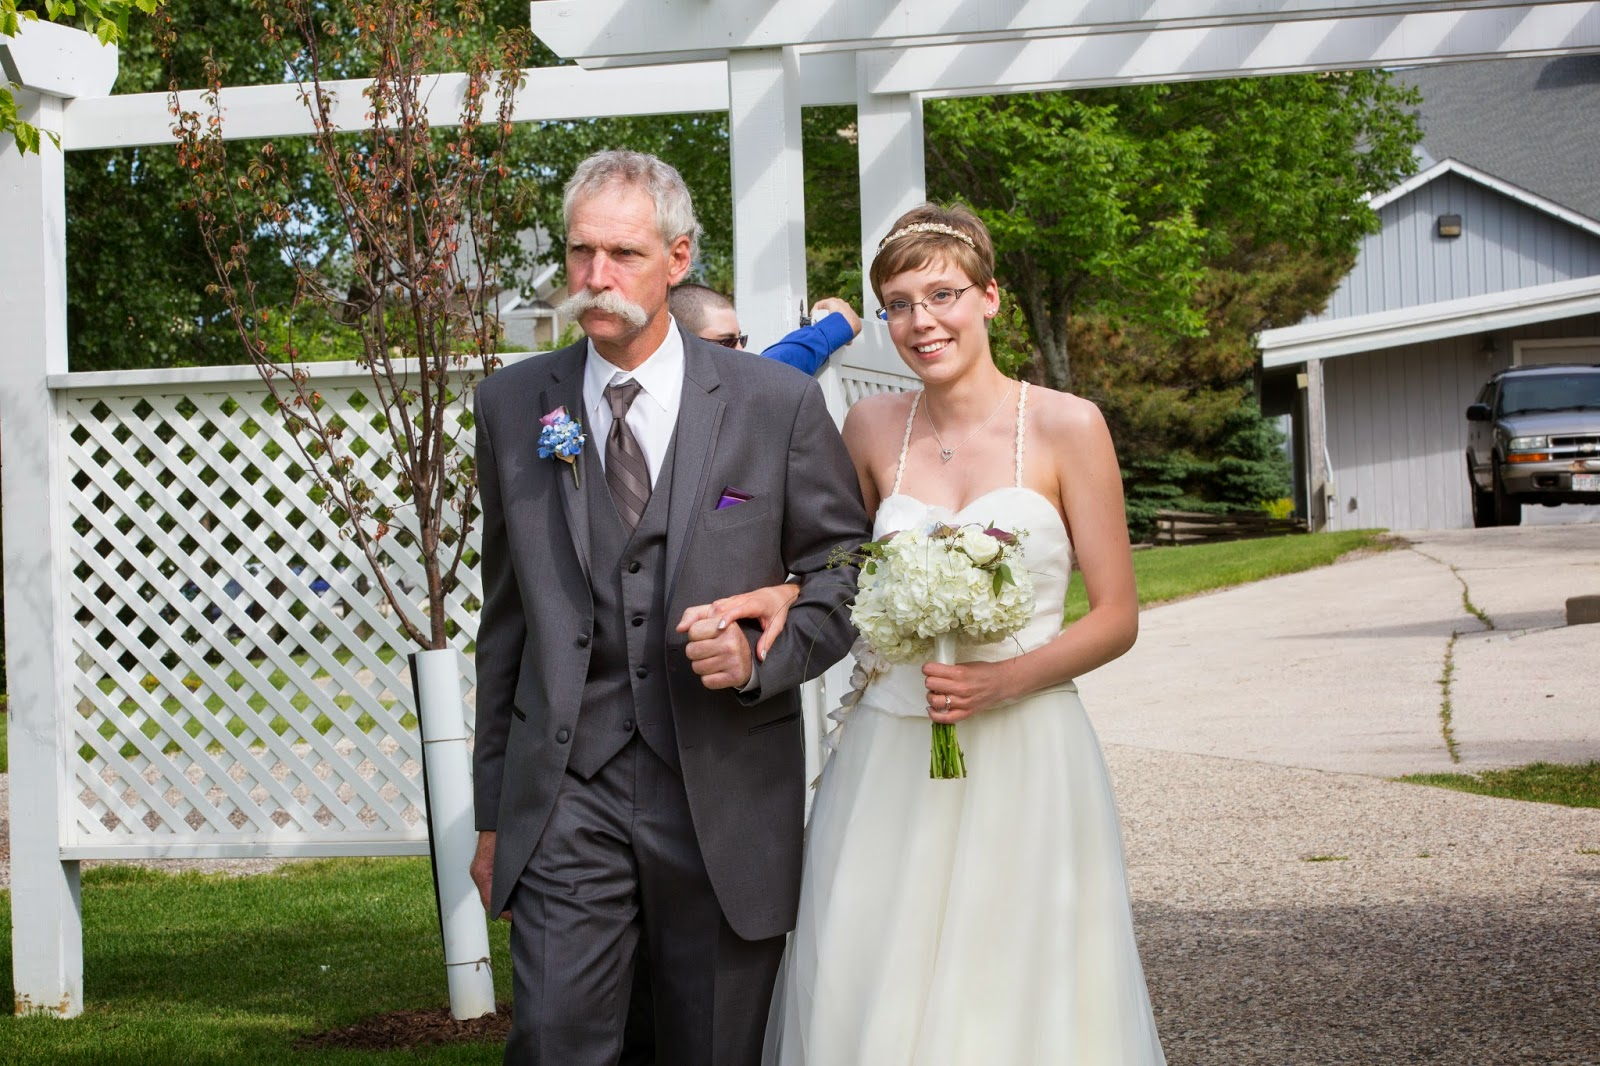 Photo of my beautiful wife being escorted down the aisle by her father.